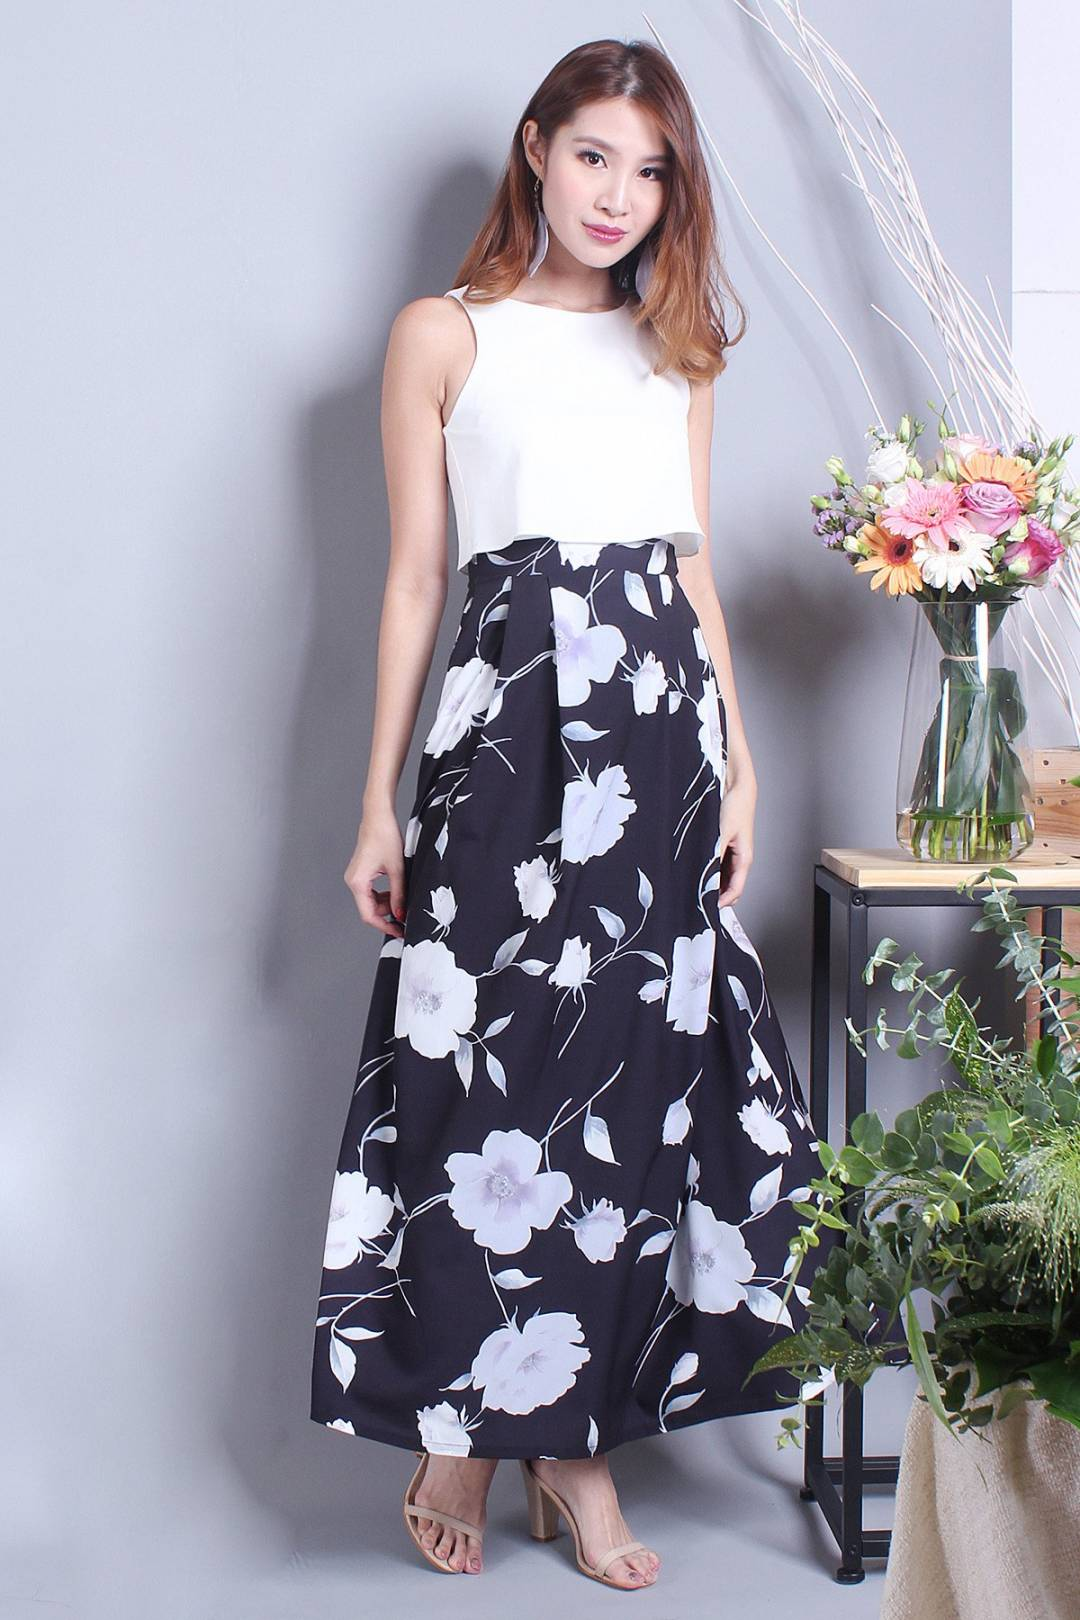 NM MAEVA CROP MAXI DRESS IN WATERFLORA BLACK [XS/S/M/L]